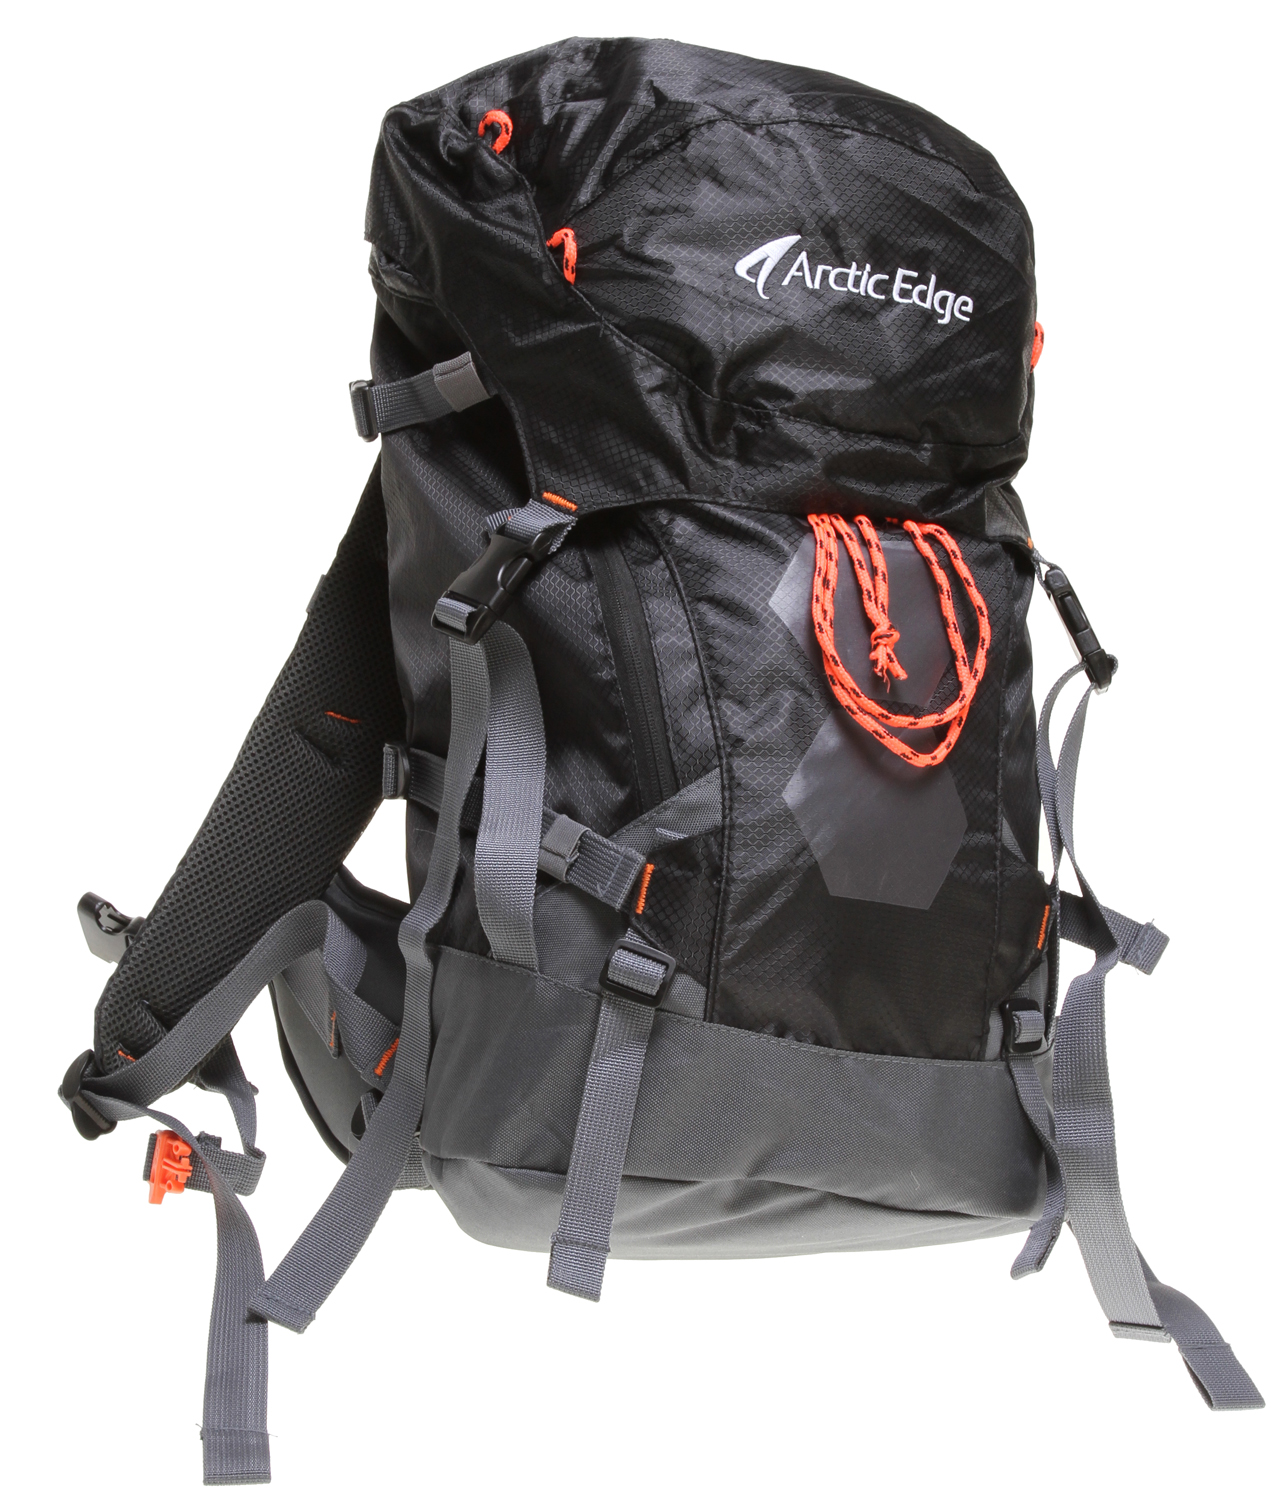 Ski Advanced ski backpackKey Features of the Arctic Edge Le Tour 35L Backpack: 2 external snow tool/shovel holder Padded backside Aluminum rail Ergonomic straps and hip-belt Height adjustable chest strap Vertical ski/snowboard carry system Top opening for hydro system Load compression straps - $47.95